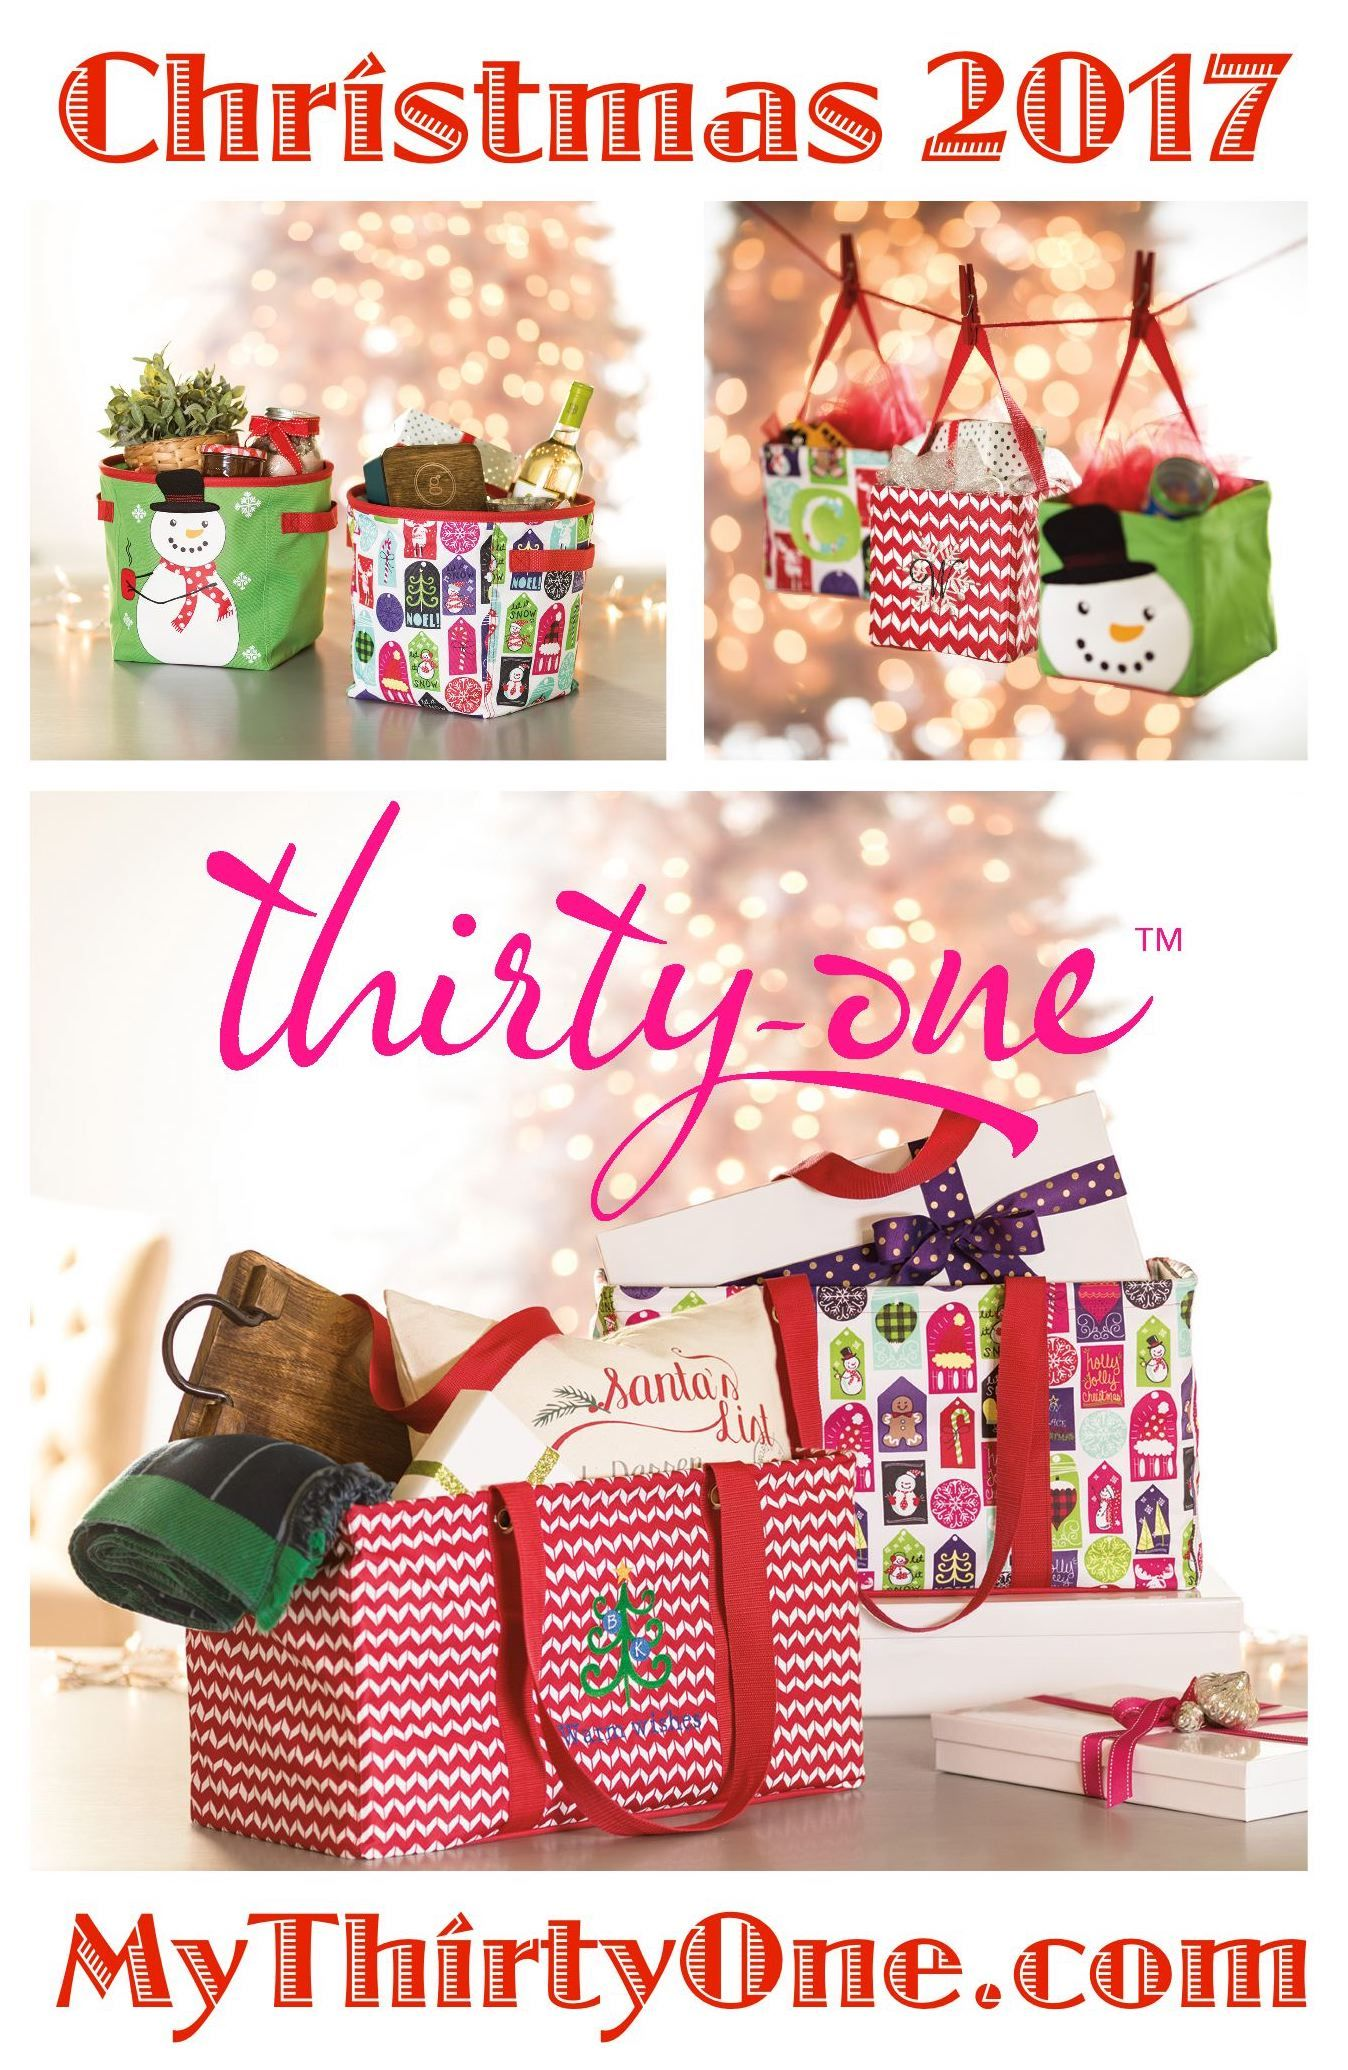 Thirty one november customer special 2014 - Christmas Starts October 1st 2017 At Thirty One Gifts Medium Utility